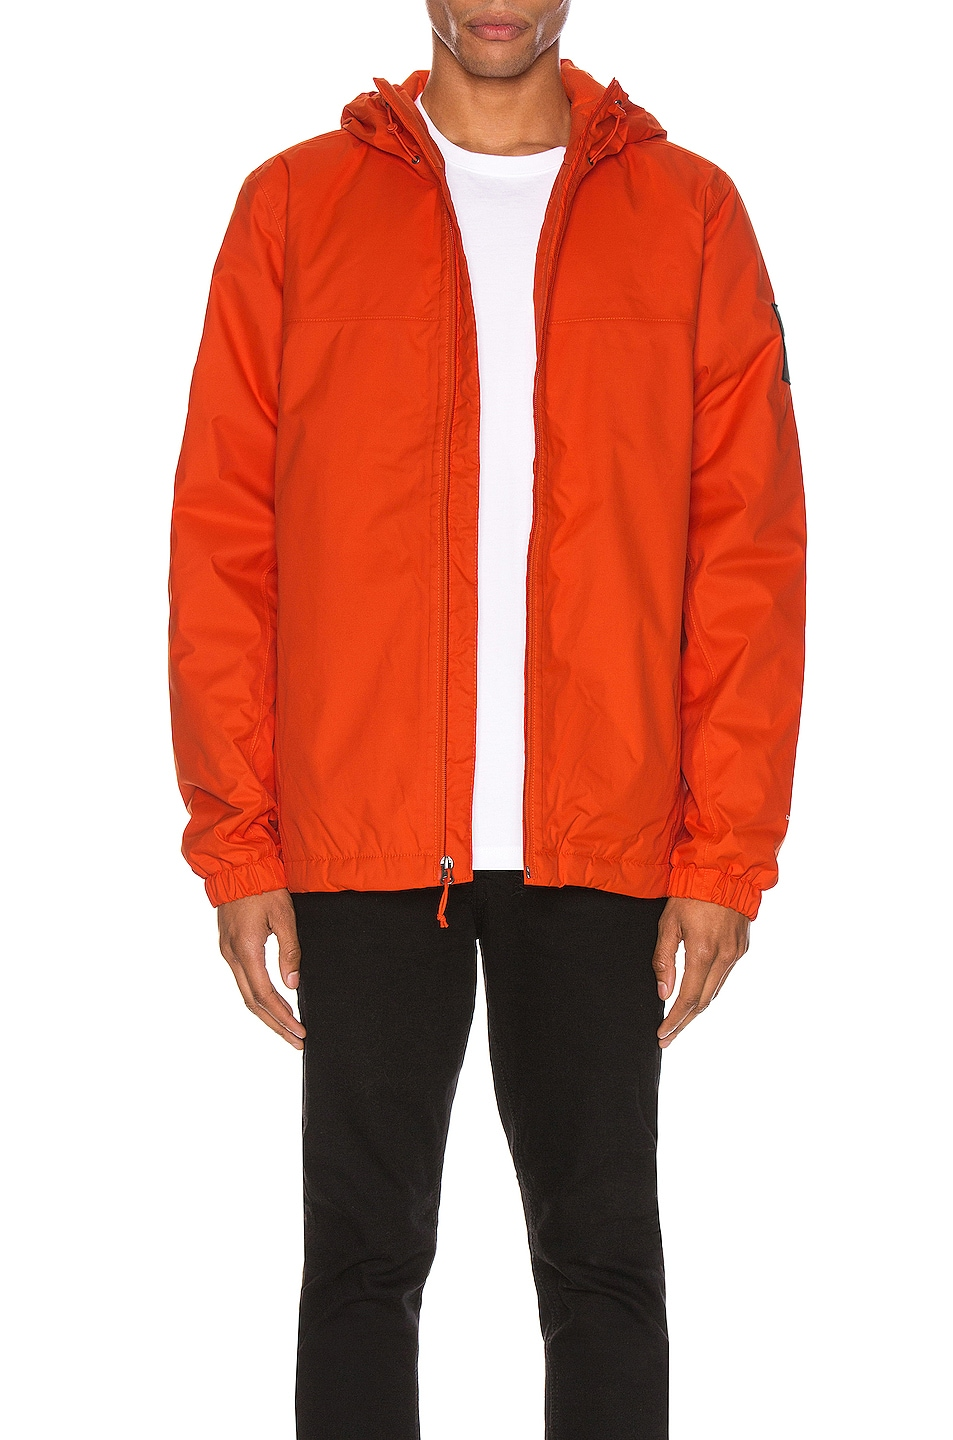 Image 2 of The North Face Black Box Ins Mountain Q Jacket in Tangerine Tango